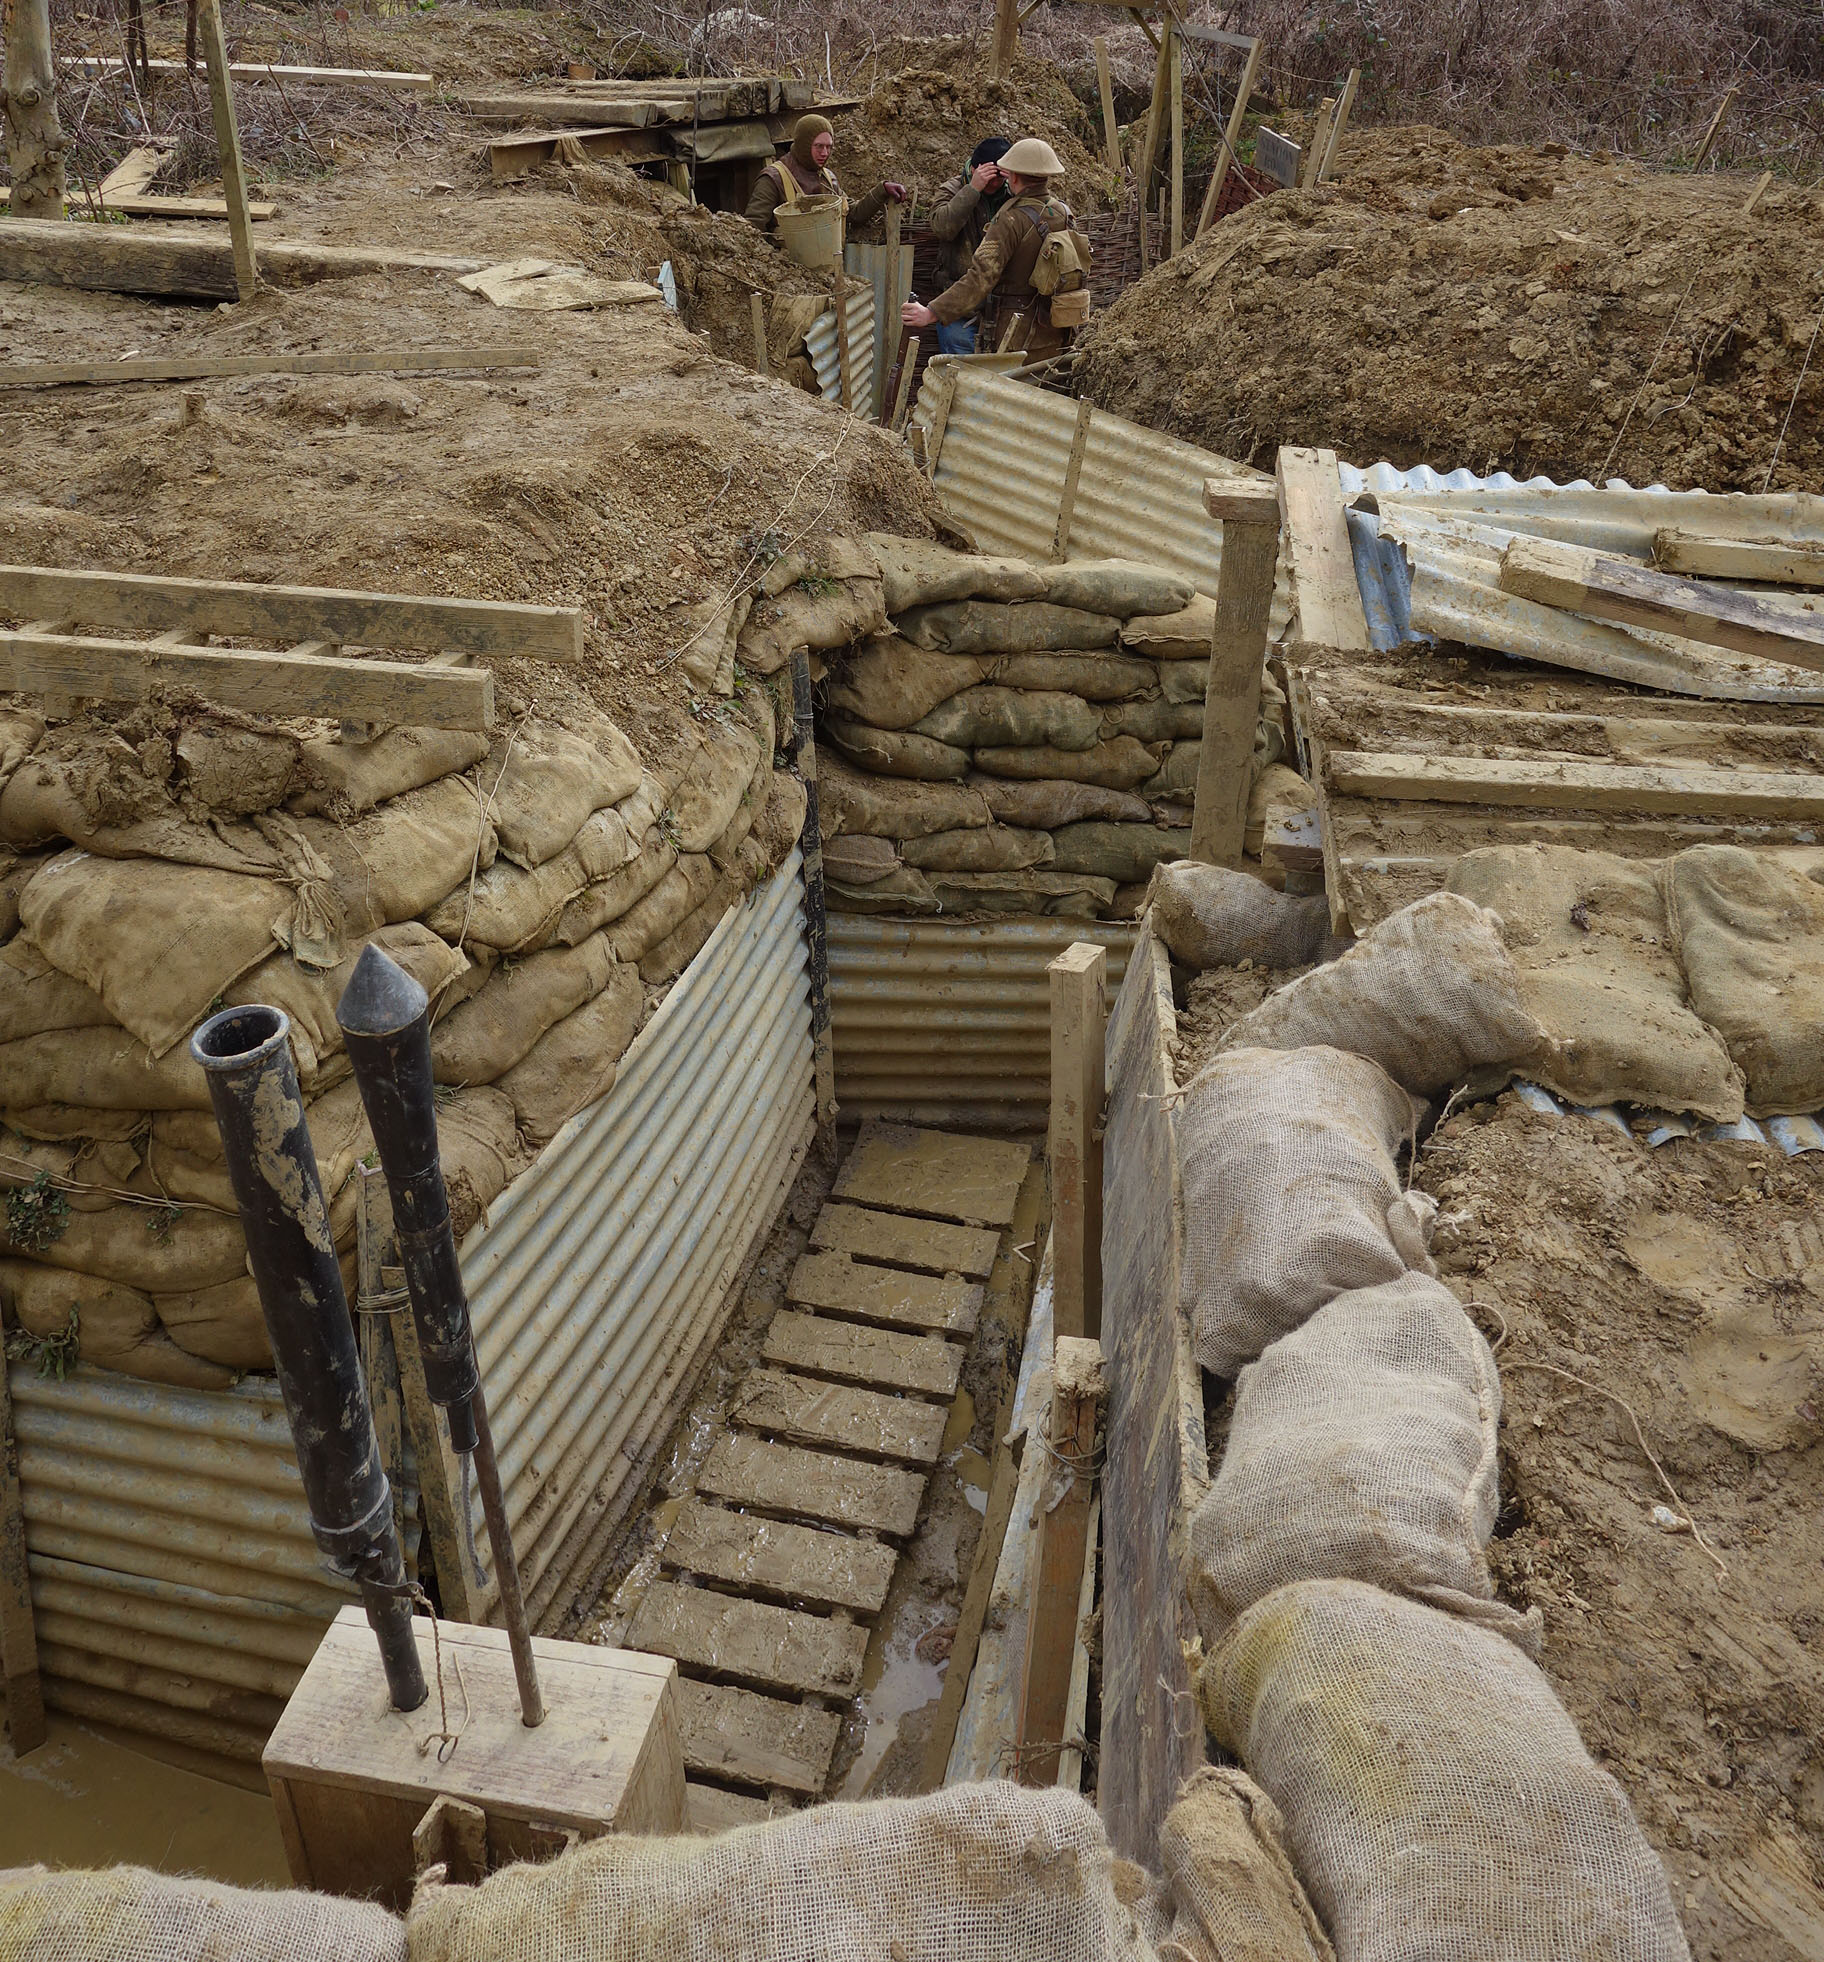 Experiencing The Muddy Conditions Of A Ww1 Trench